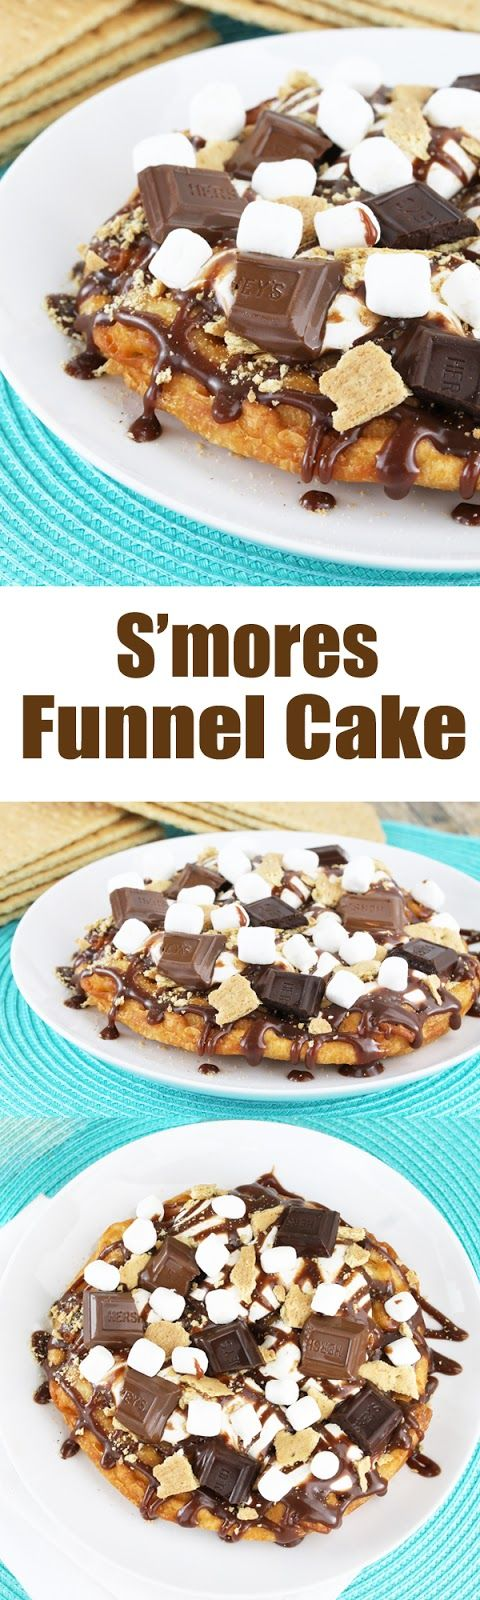 Smores Funnel Cake. The goodness of a good old fashioned funnel cake smothered in the flavors of smores. It will take you right back to the county fair!